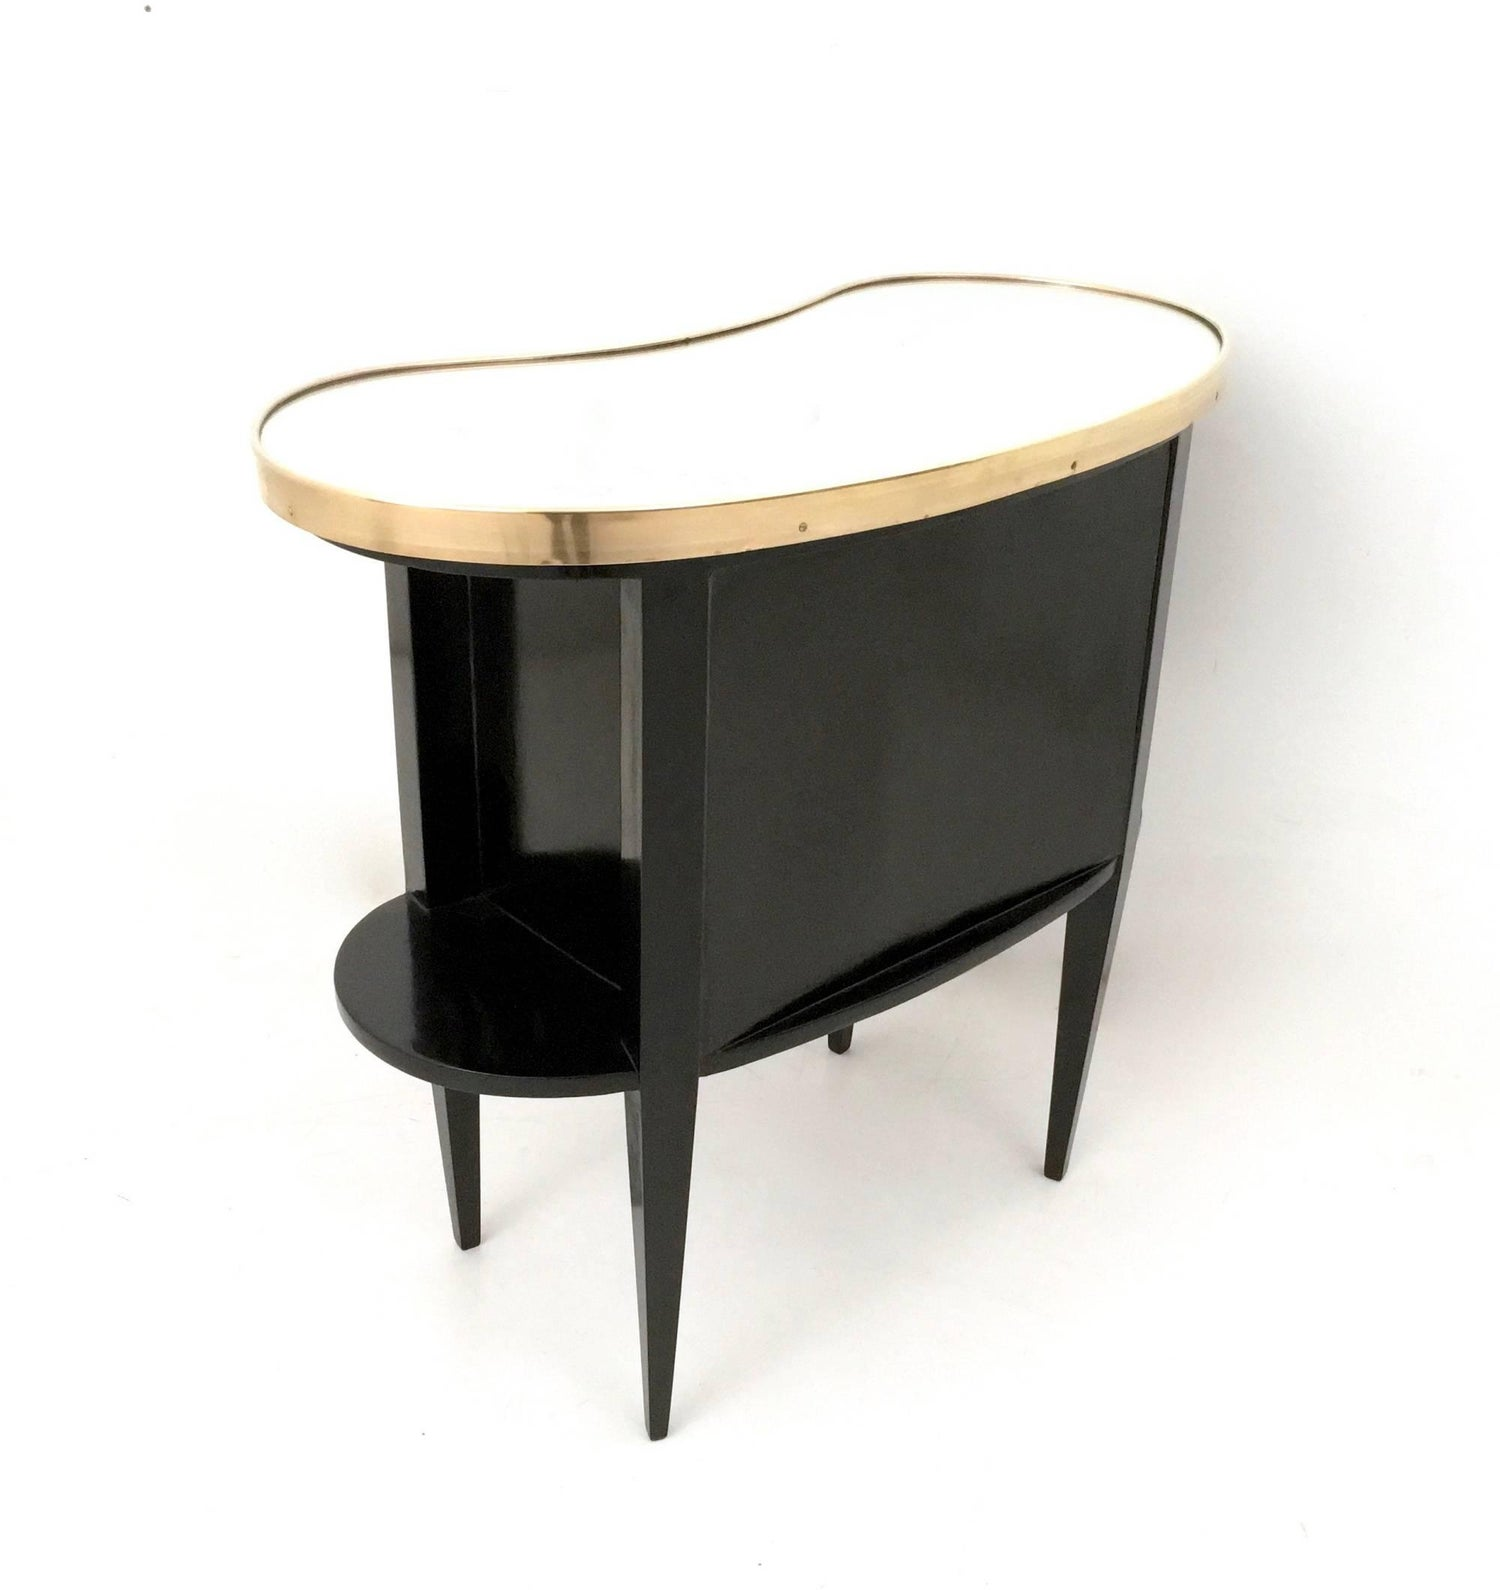 Black Side Table Vanity With Drawers And A Mirrored Top Italy 1950 At 1stdibs